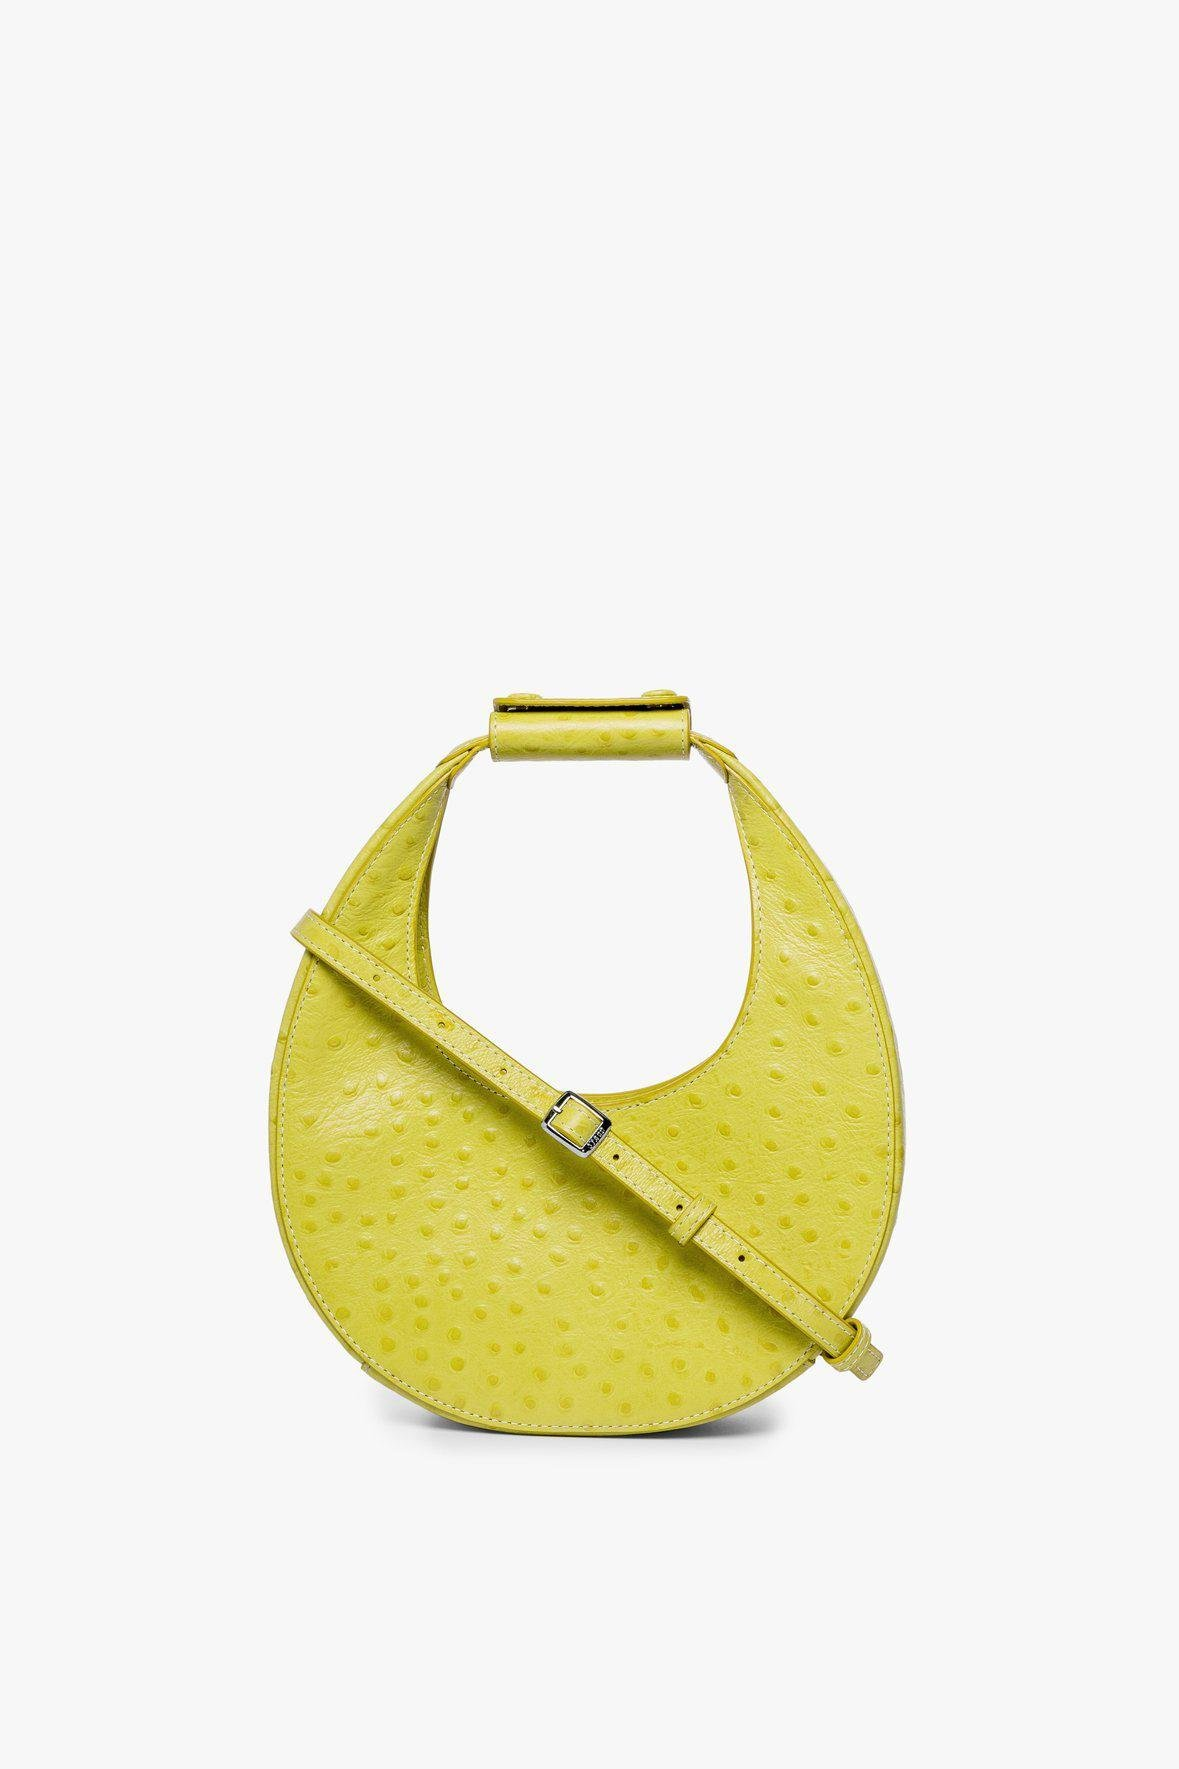 MINI MOON BAG   CHARTREUSE OSTRICH EMBOSSED